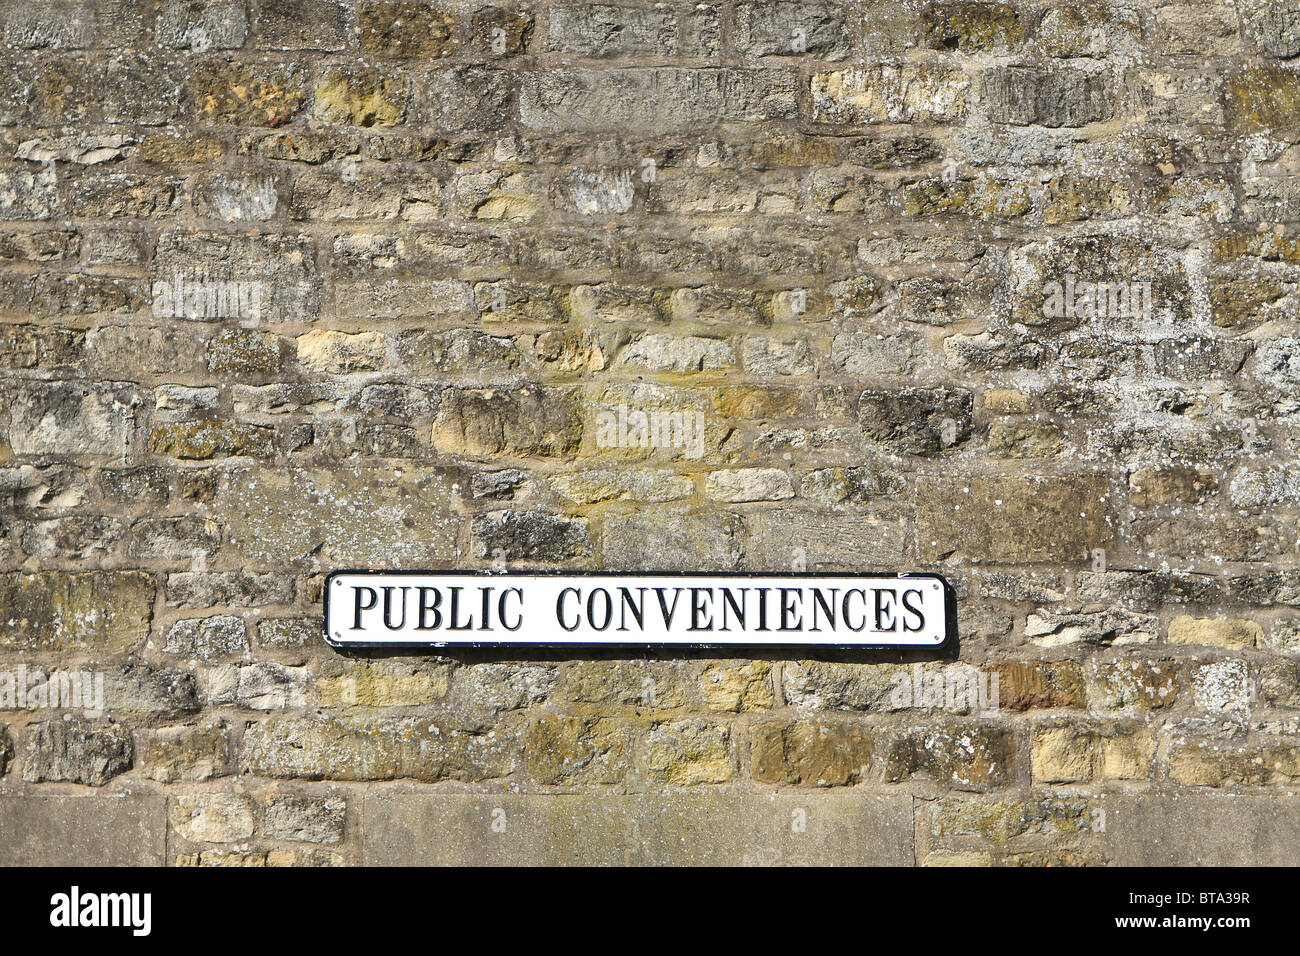 Public Conveniences - sign indication the location of toilets, UK. Old stone wall background. - Stock Image